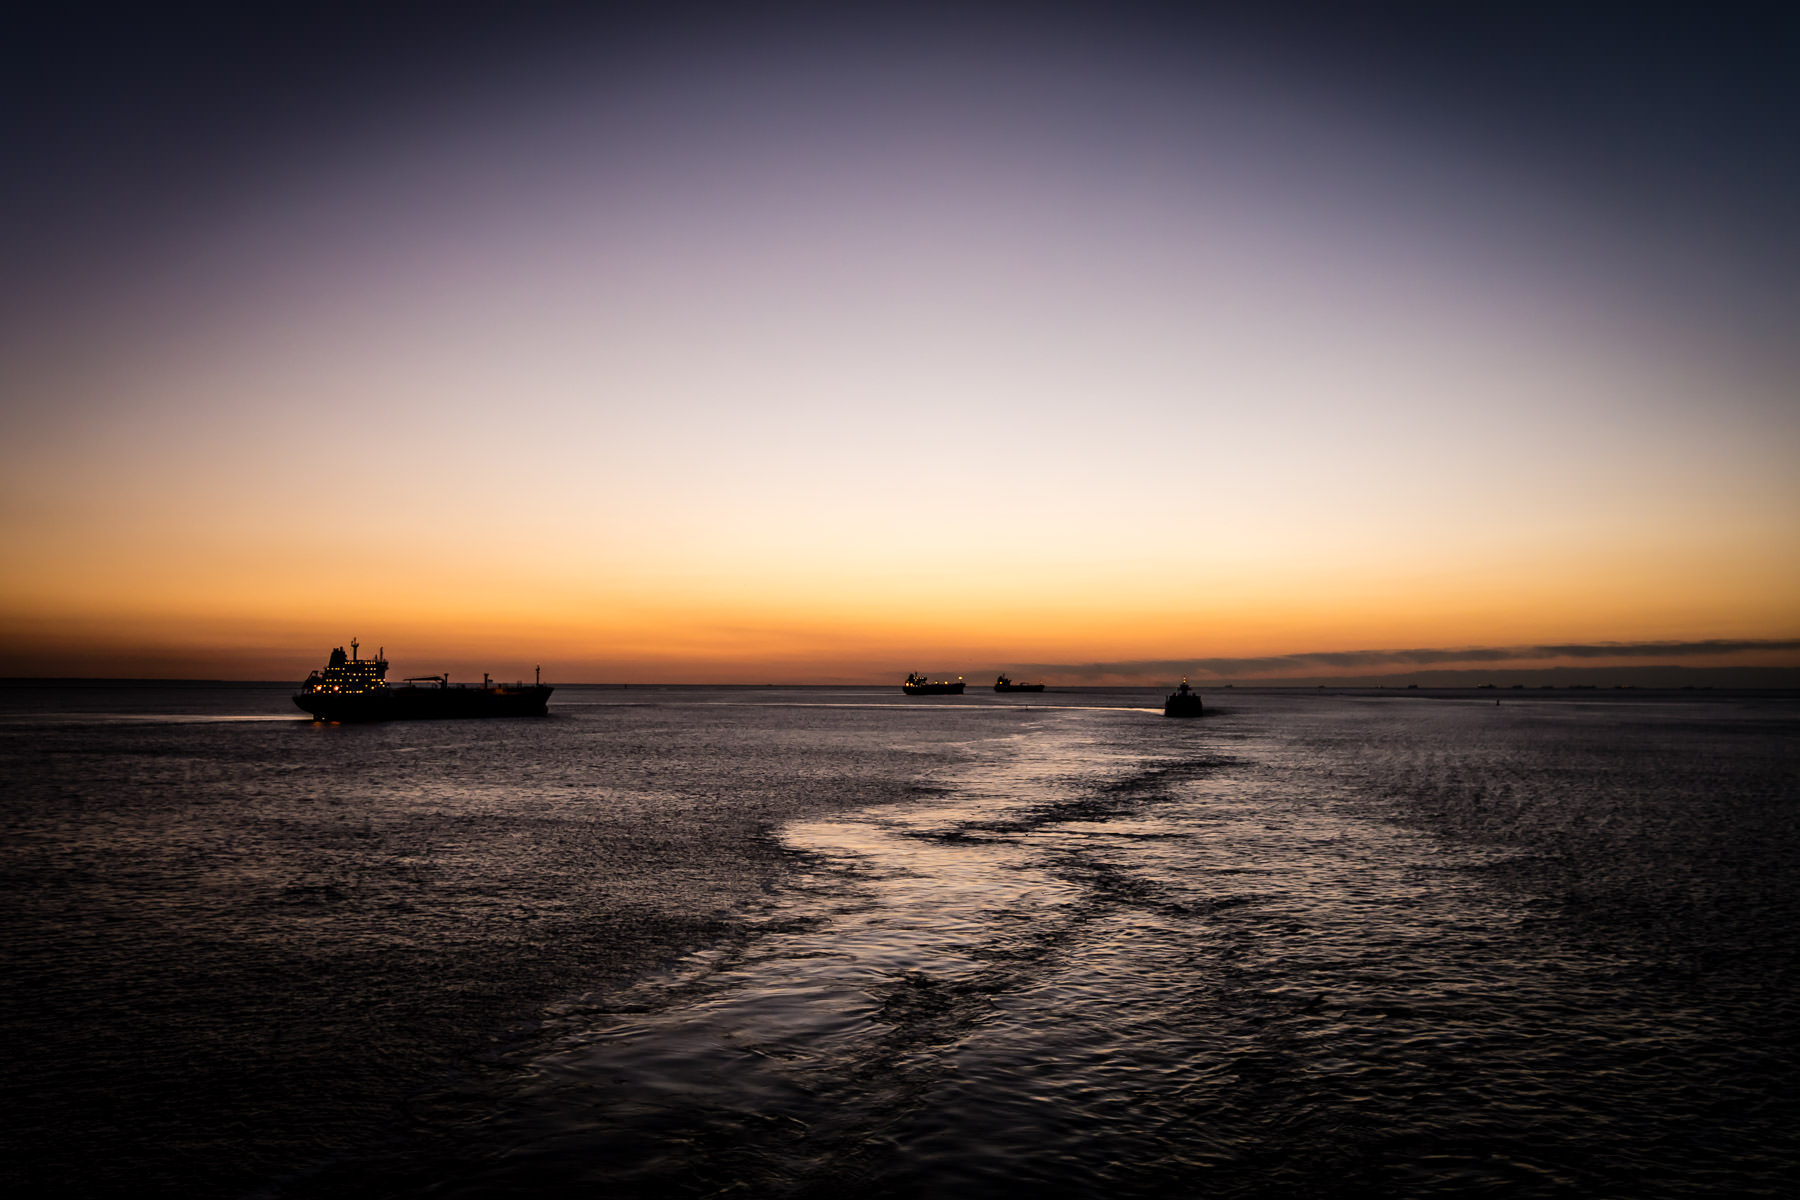 Ships transit Bolivar Roads just off the coast of Galveston, Texas, as the sun rises over the Gulf of Mexico.